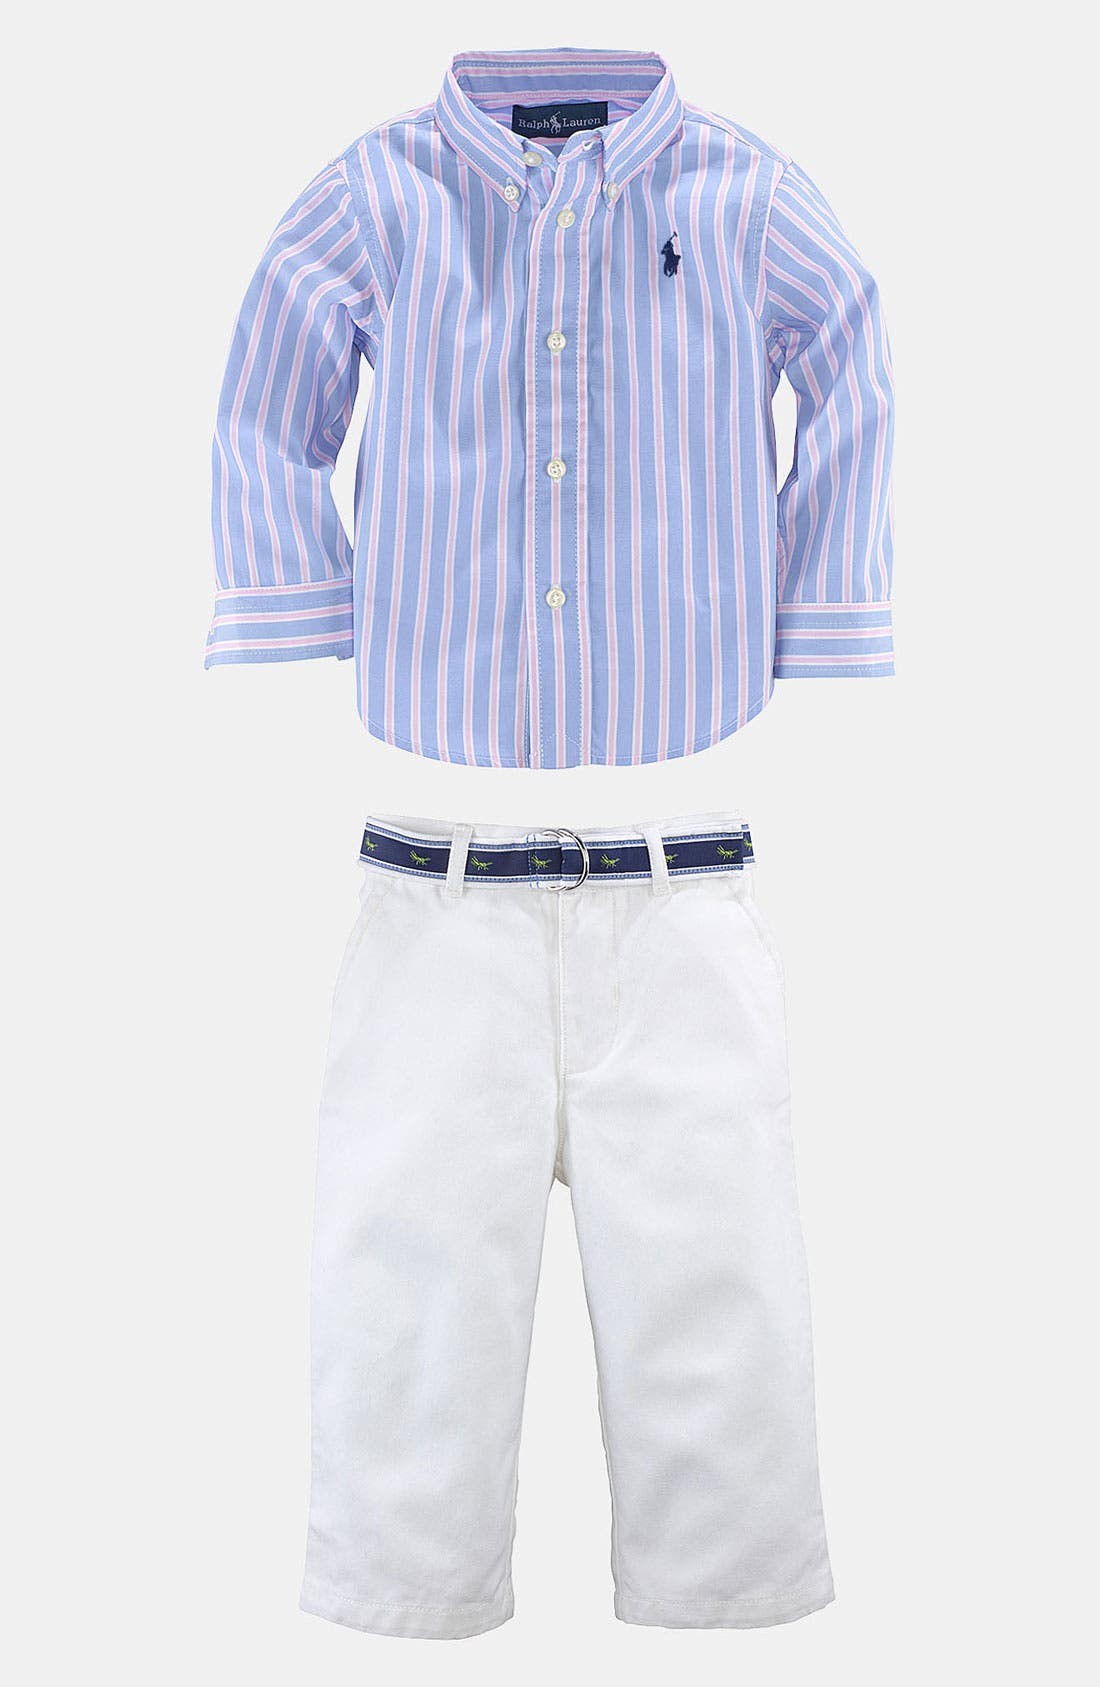 Alternate Image 1 Selected - Ralph Lauren Shirt & Pants (Baby)